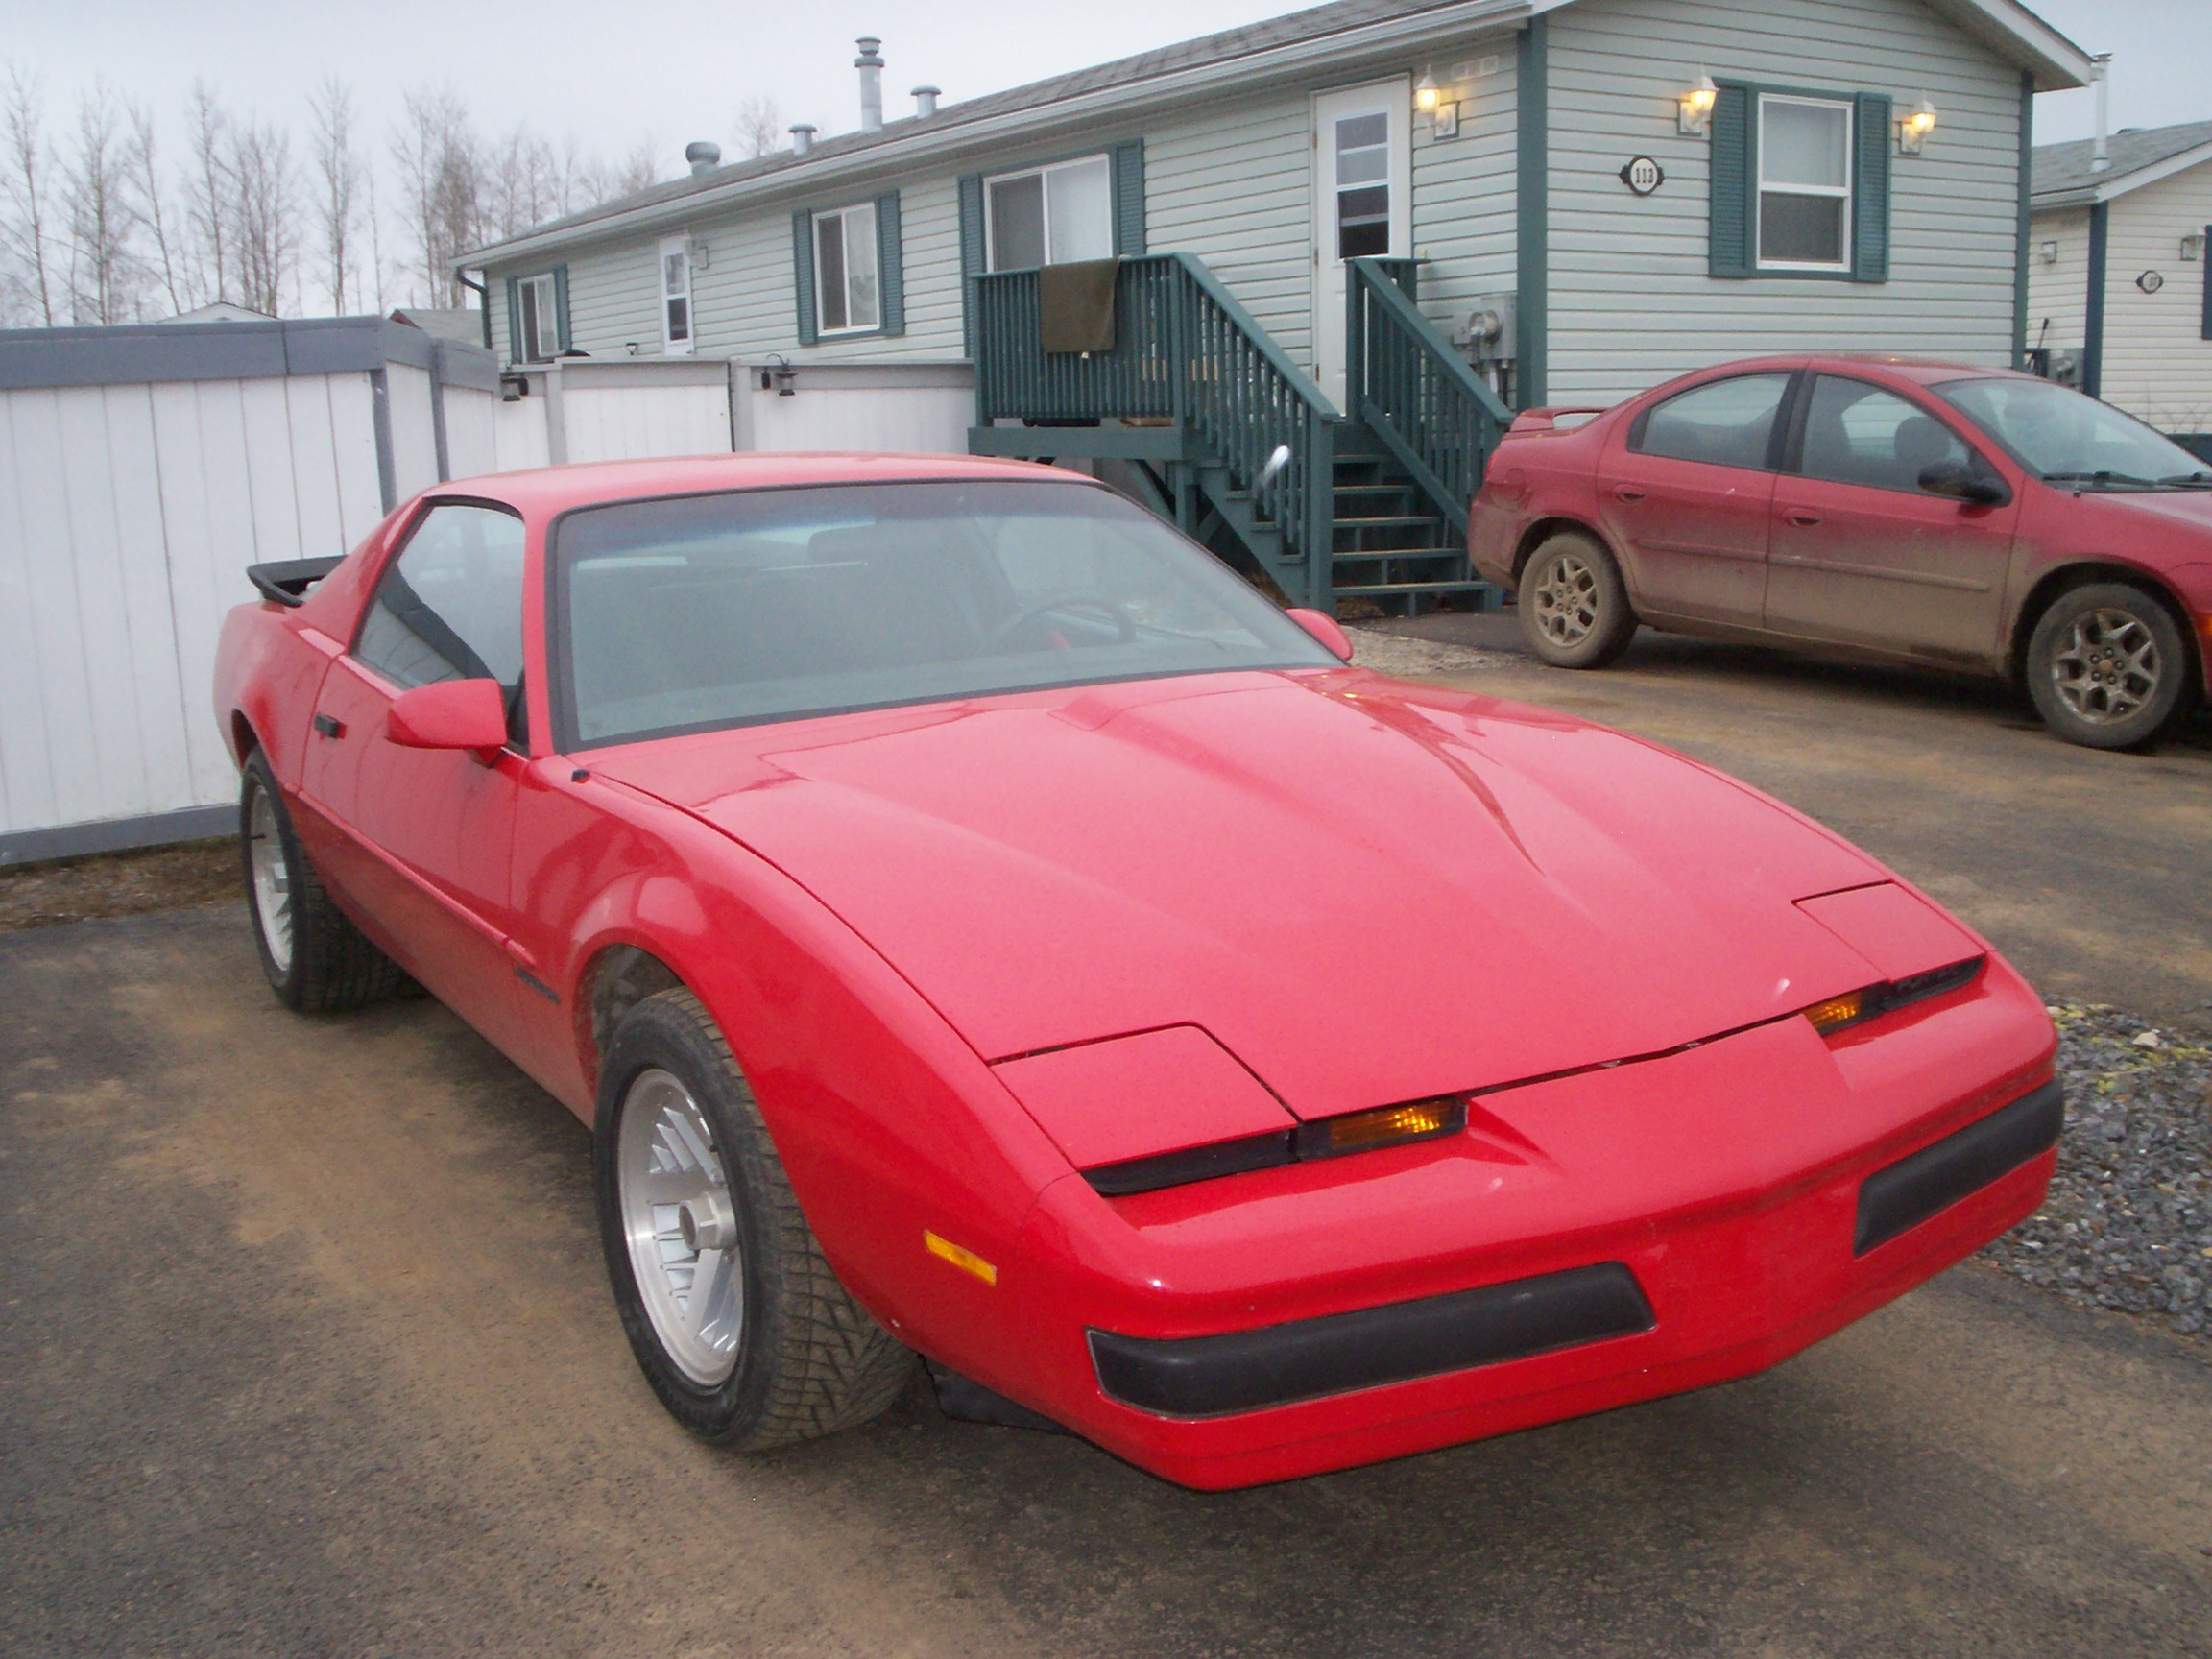 Firebird1988 1988 Pontiac Firebird Specs Photos Modification Info At Cardomain